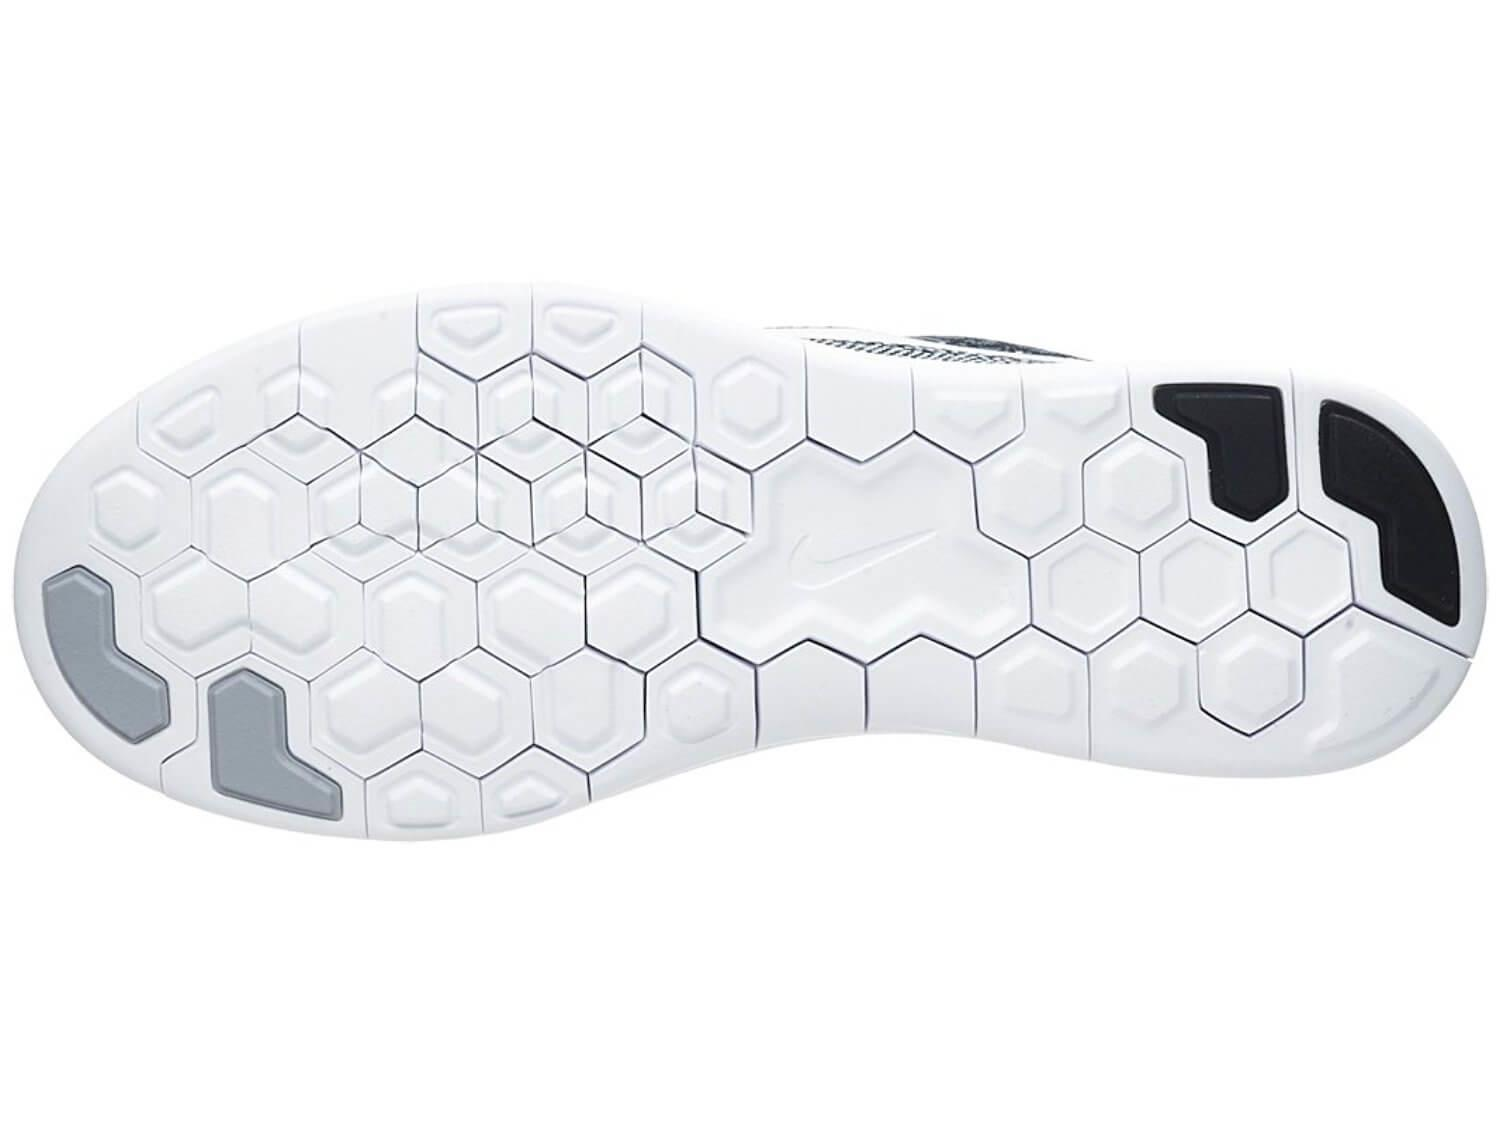 BRS 1000 carbon rubber was used to design the durable outsole of the Nike Free RN Distance.